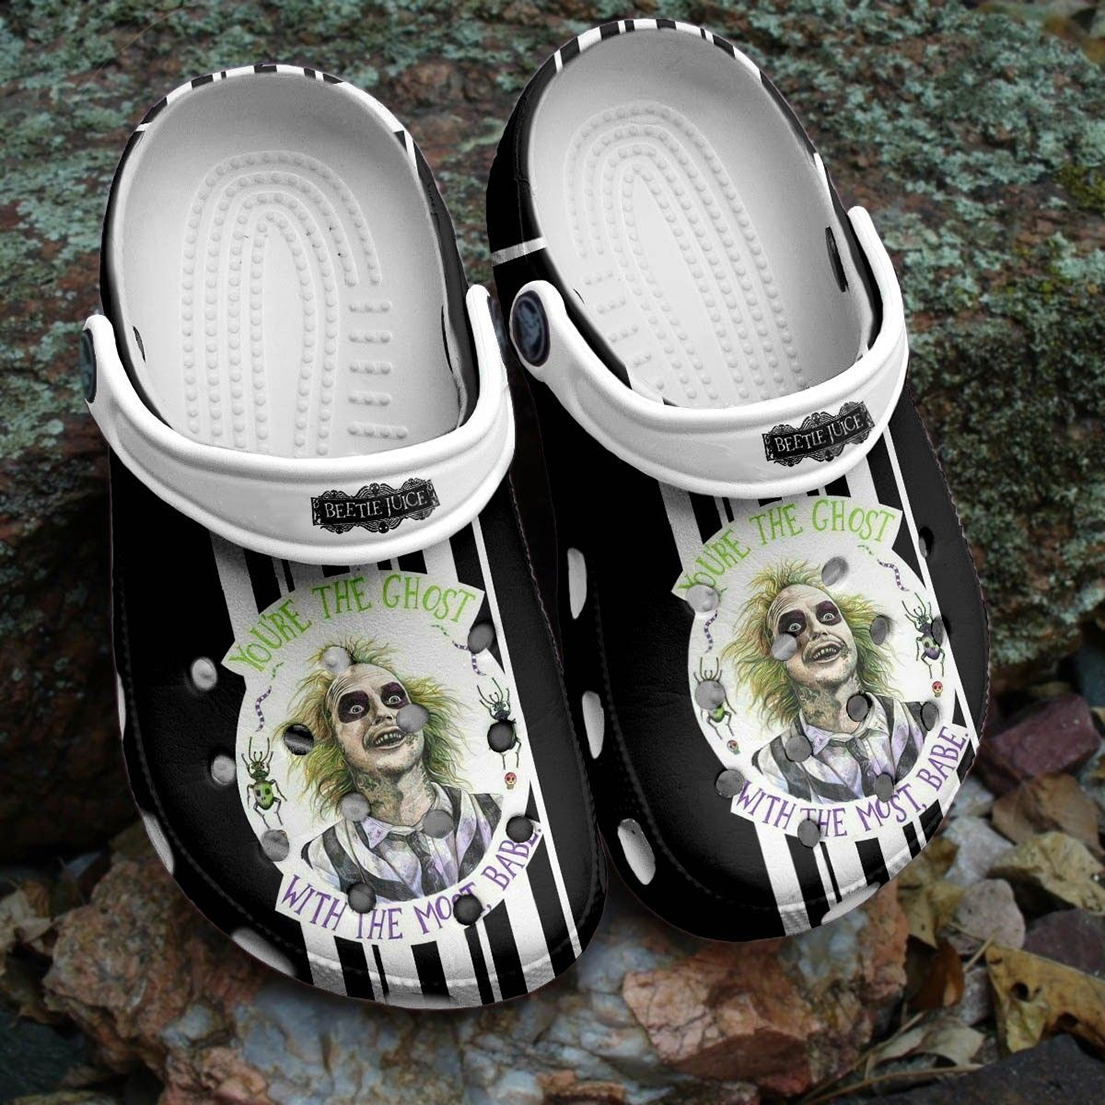 Beetlejuice You're the ghost with the most babe halloween crocband crocs shoes - Picture 1